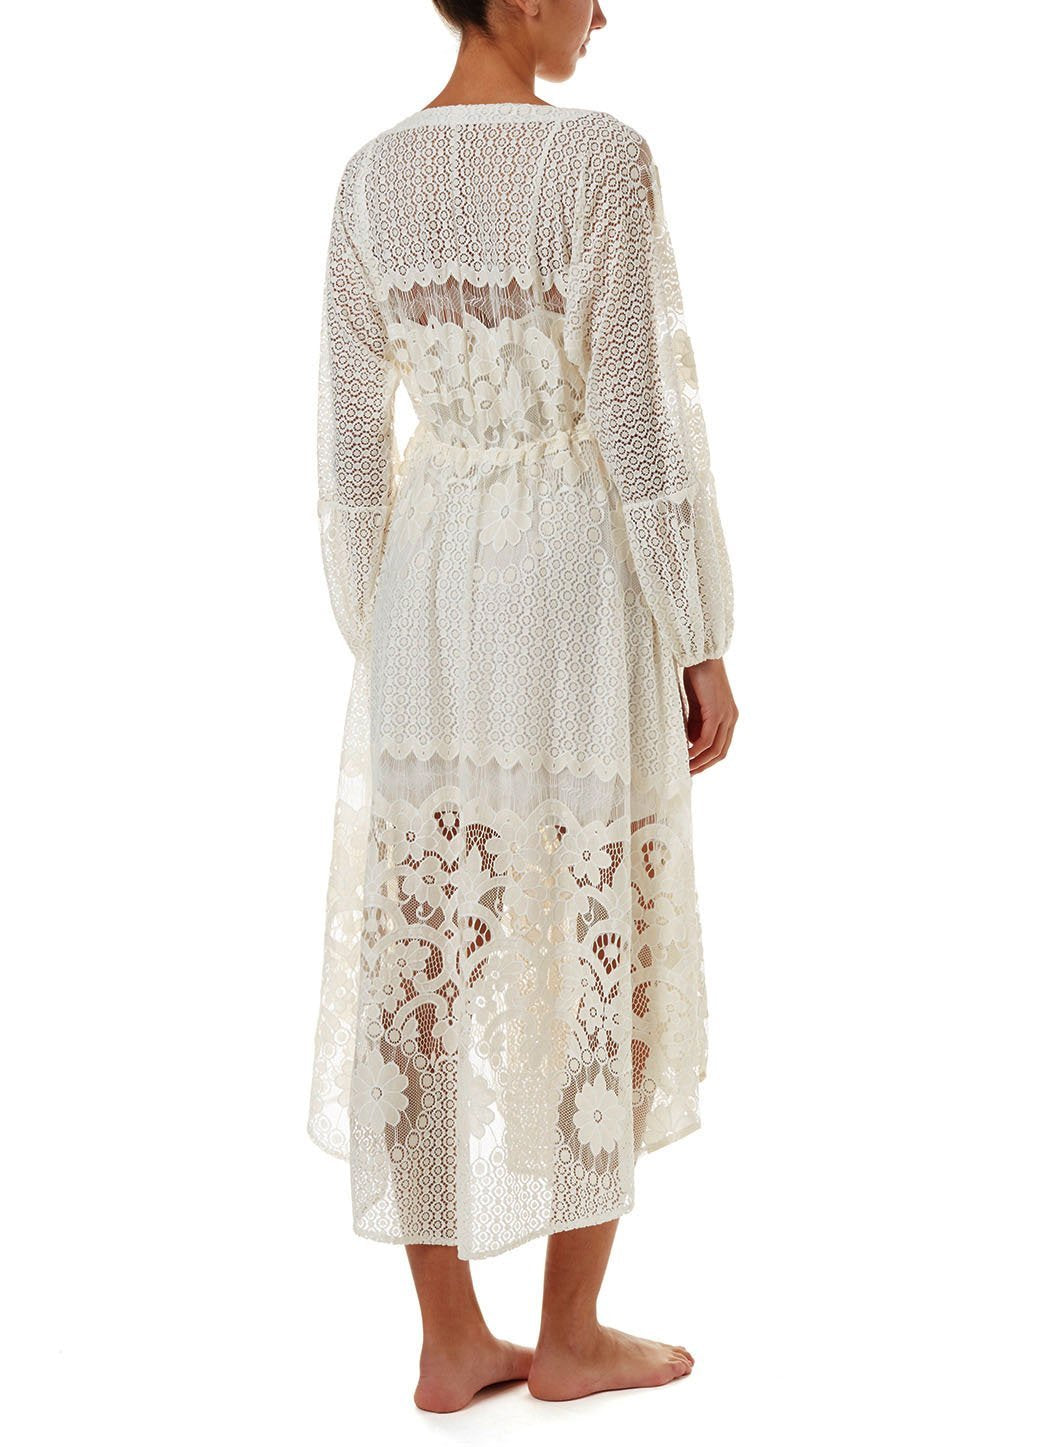 melissa cream lace tieside midi dress 2019 B